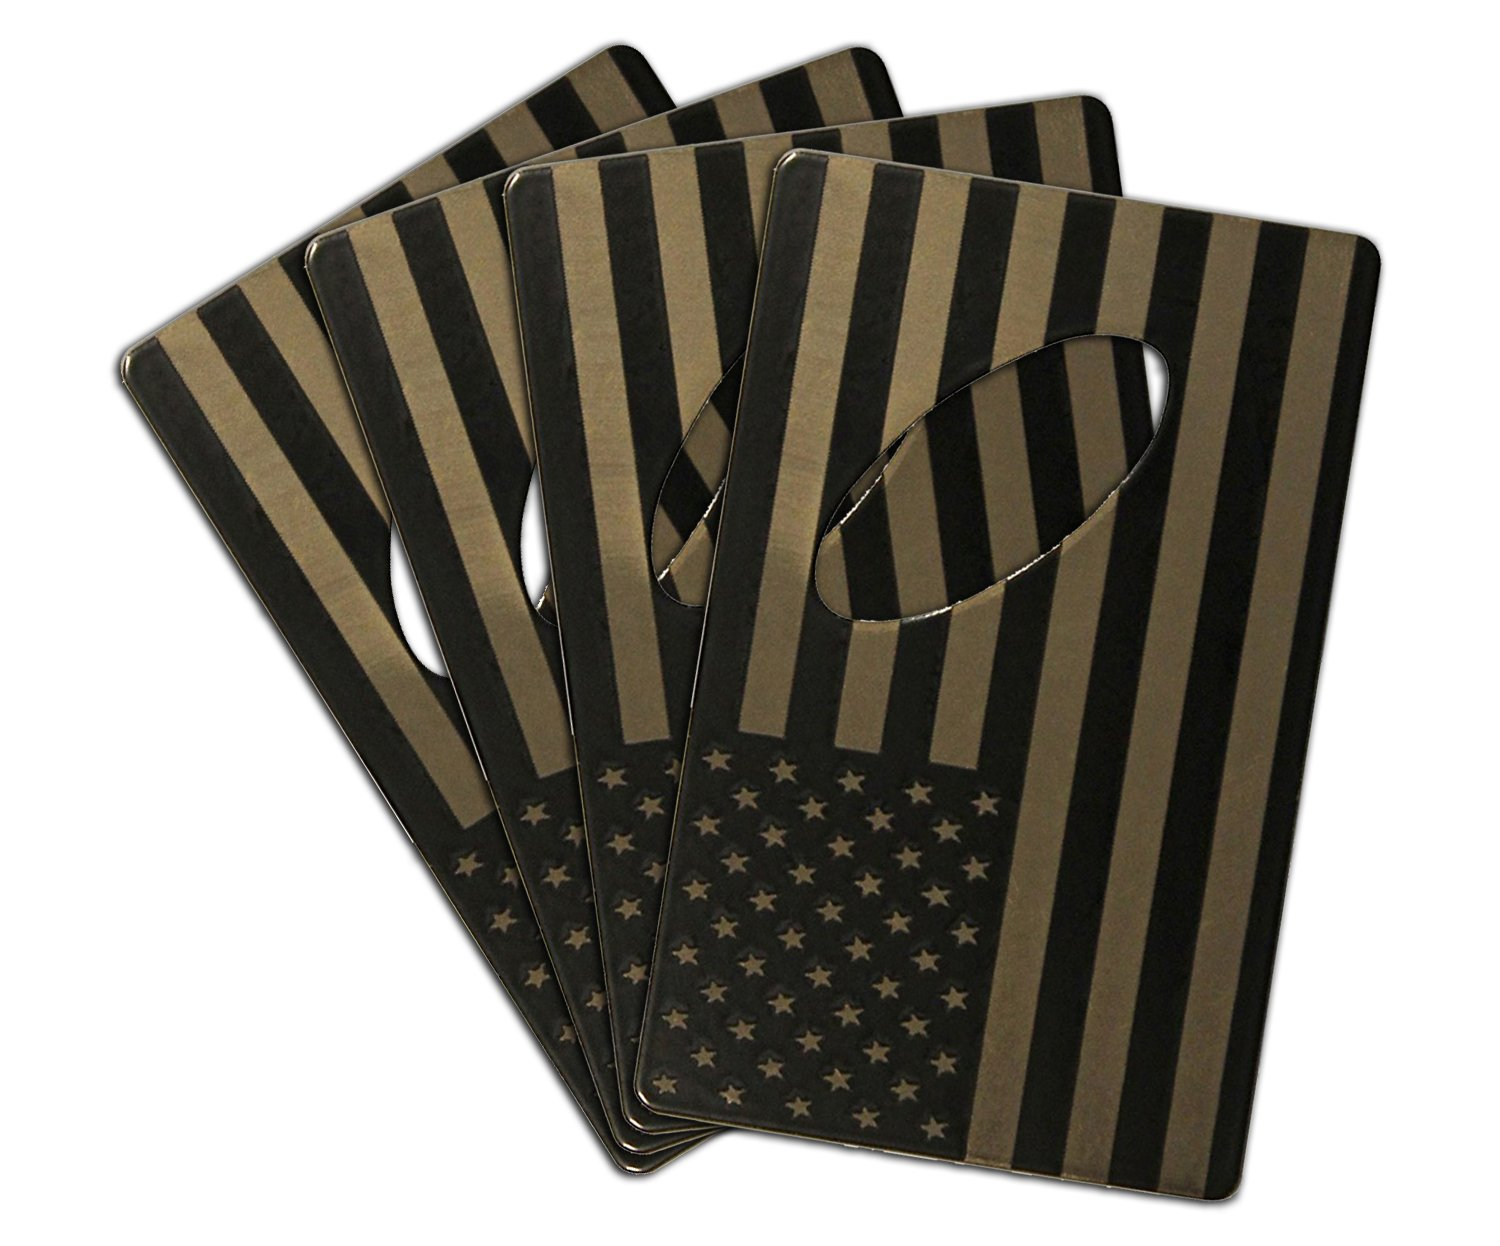 American Flag Bottle Opener Made From Credit Card Size Laser Etched Steel (4)